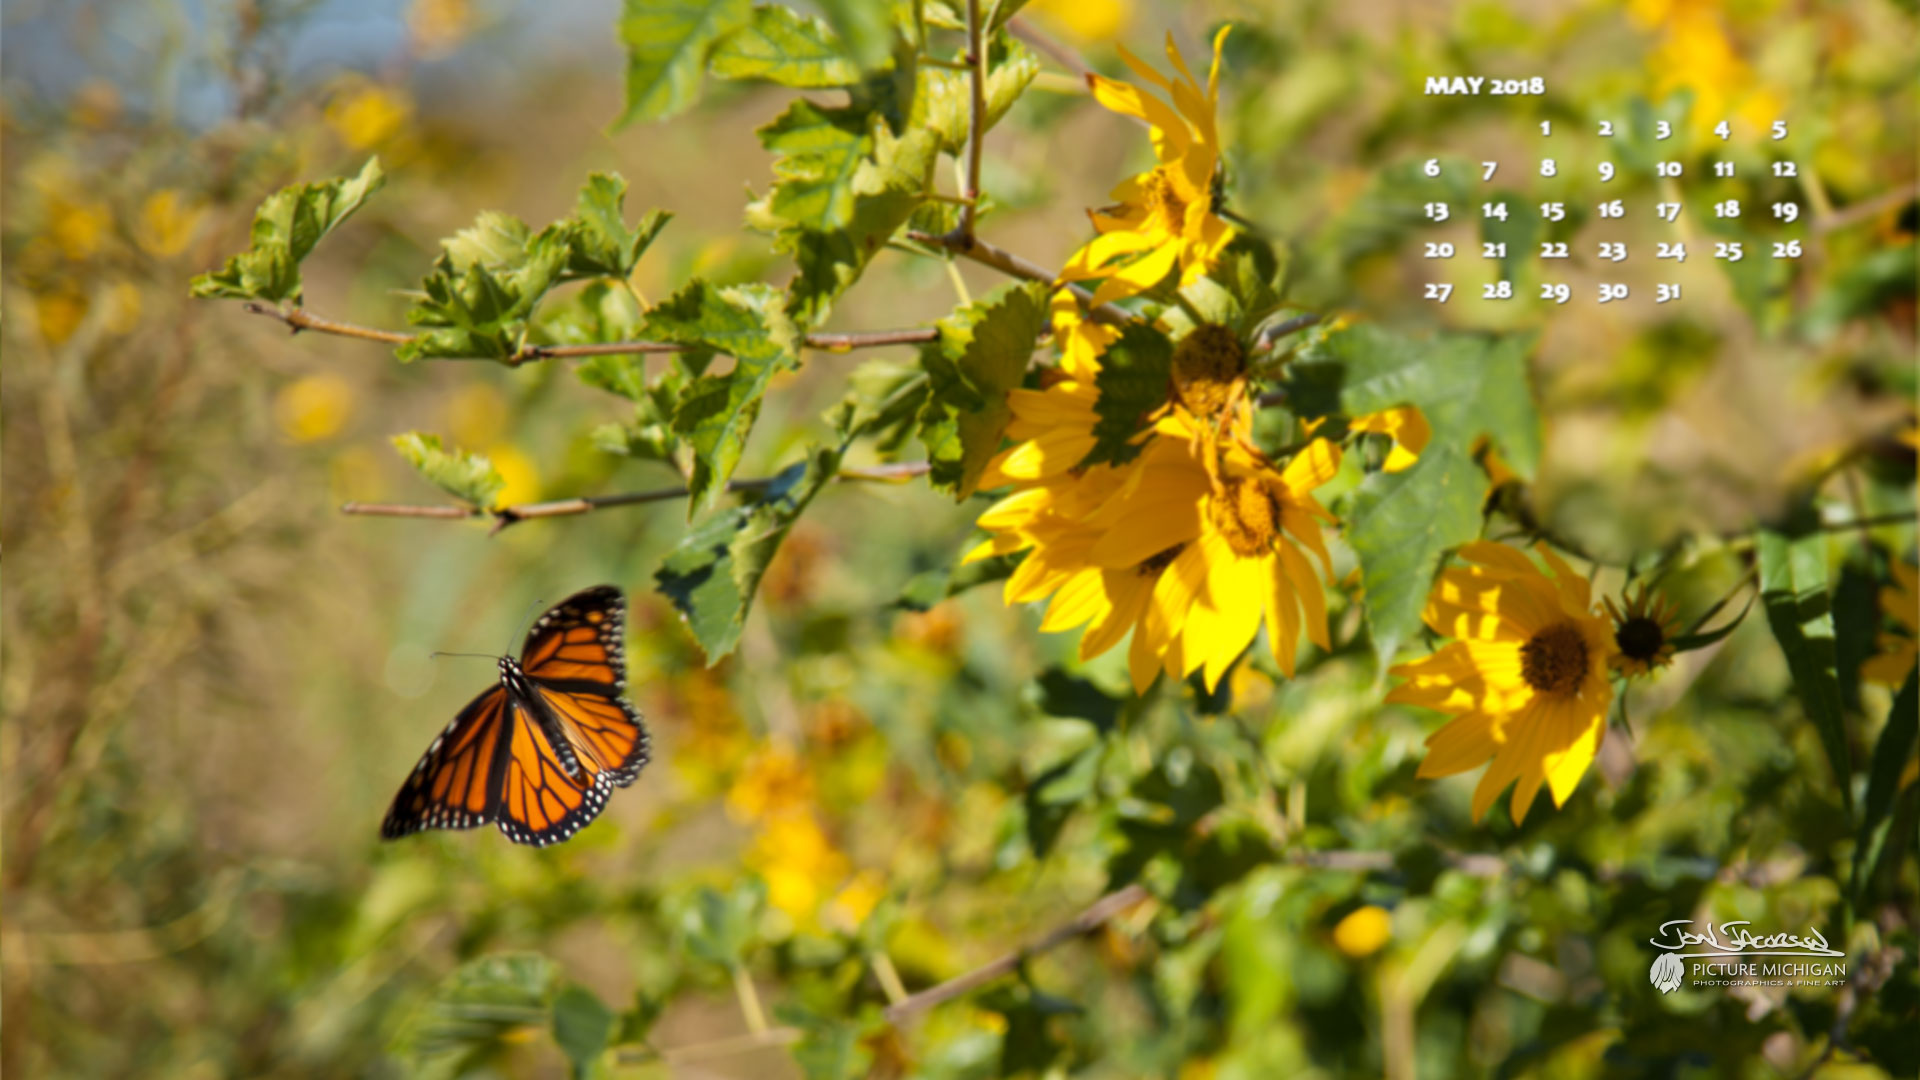 May 2018 Desktop Calendar Wallpaper - Michigan Butterfly